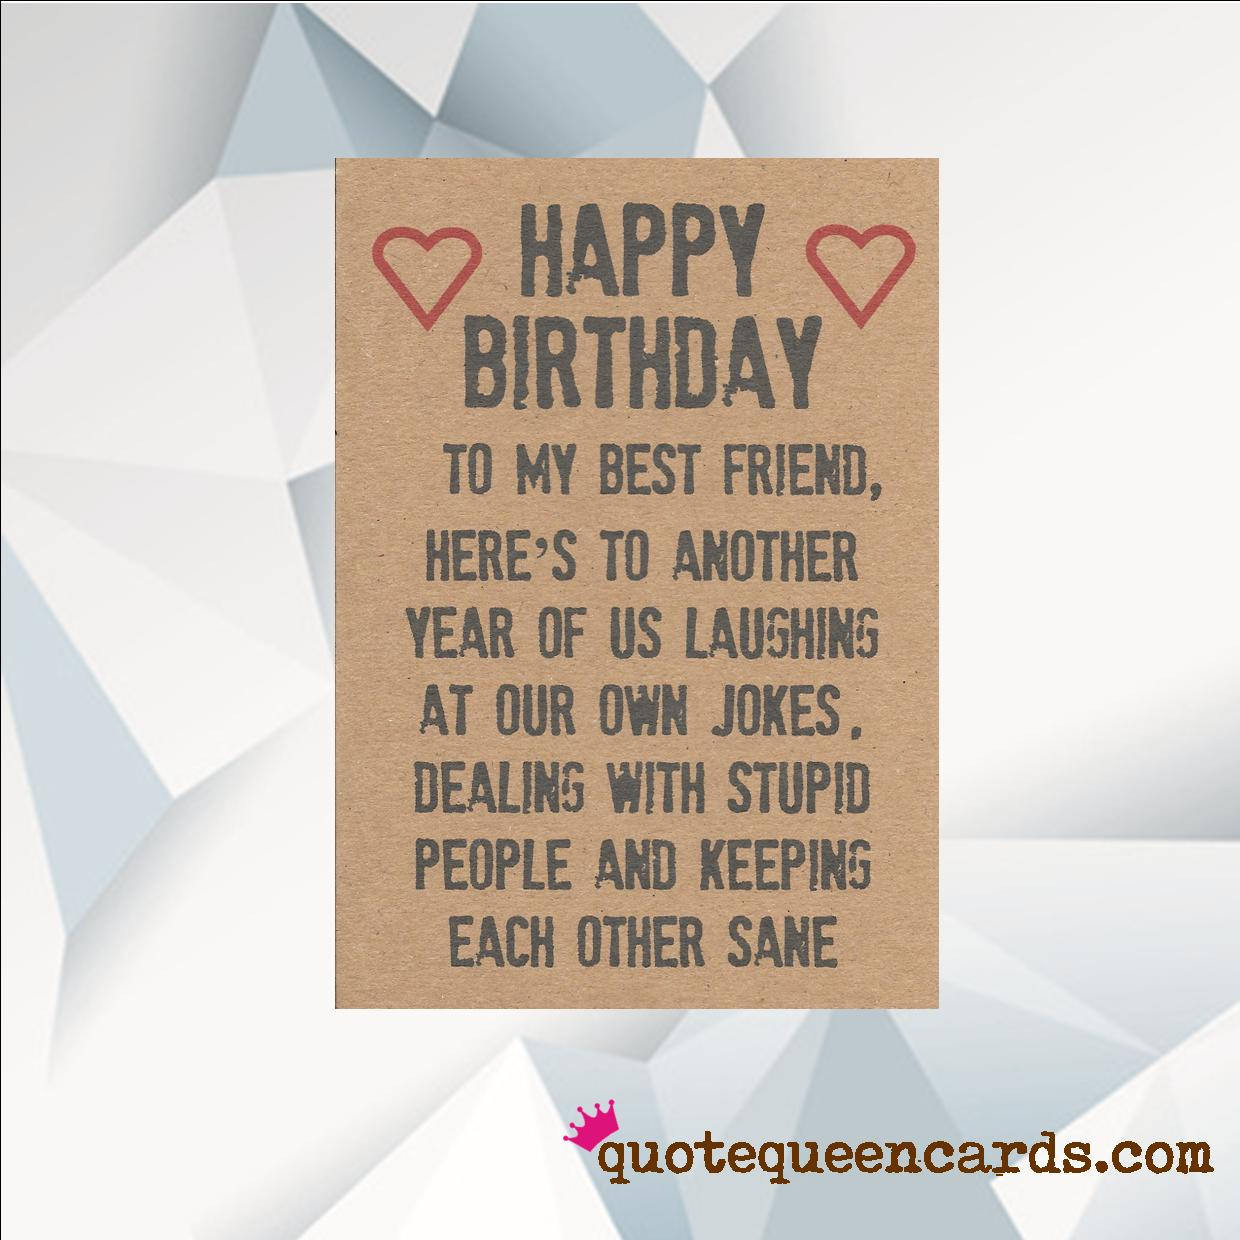 Happy Birthday Funny Best Friend  Happy Birthday BEST FRIEND Funny Birthday Card For Friend